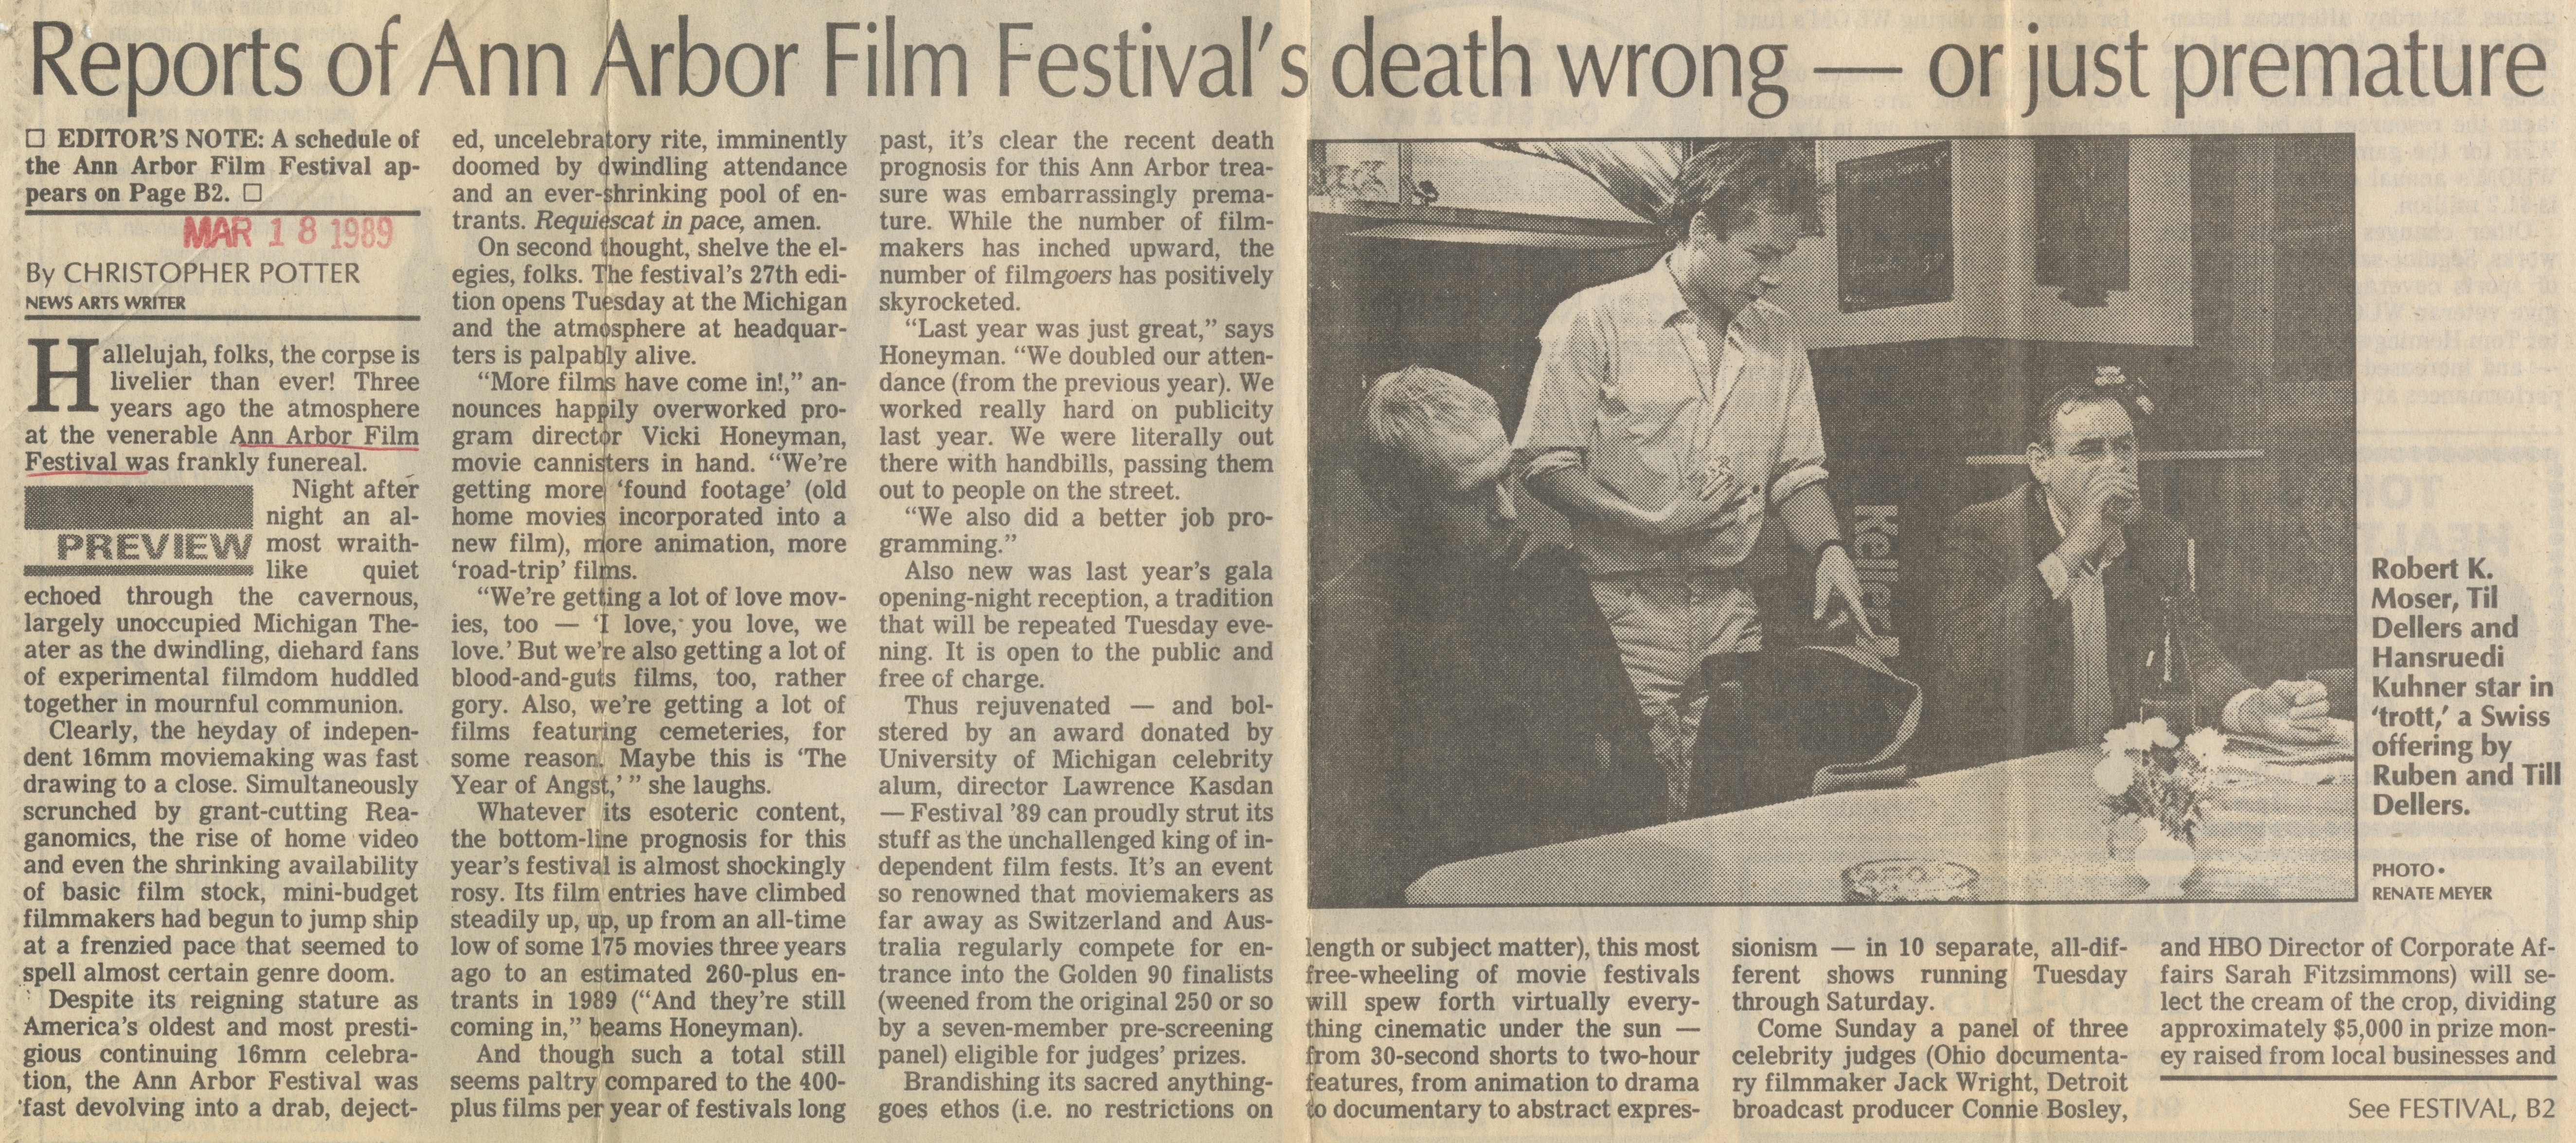 Reports of Ann Arbor Film Festival's death wrong - or just premature image